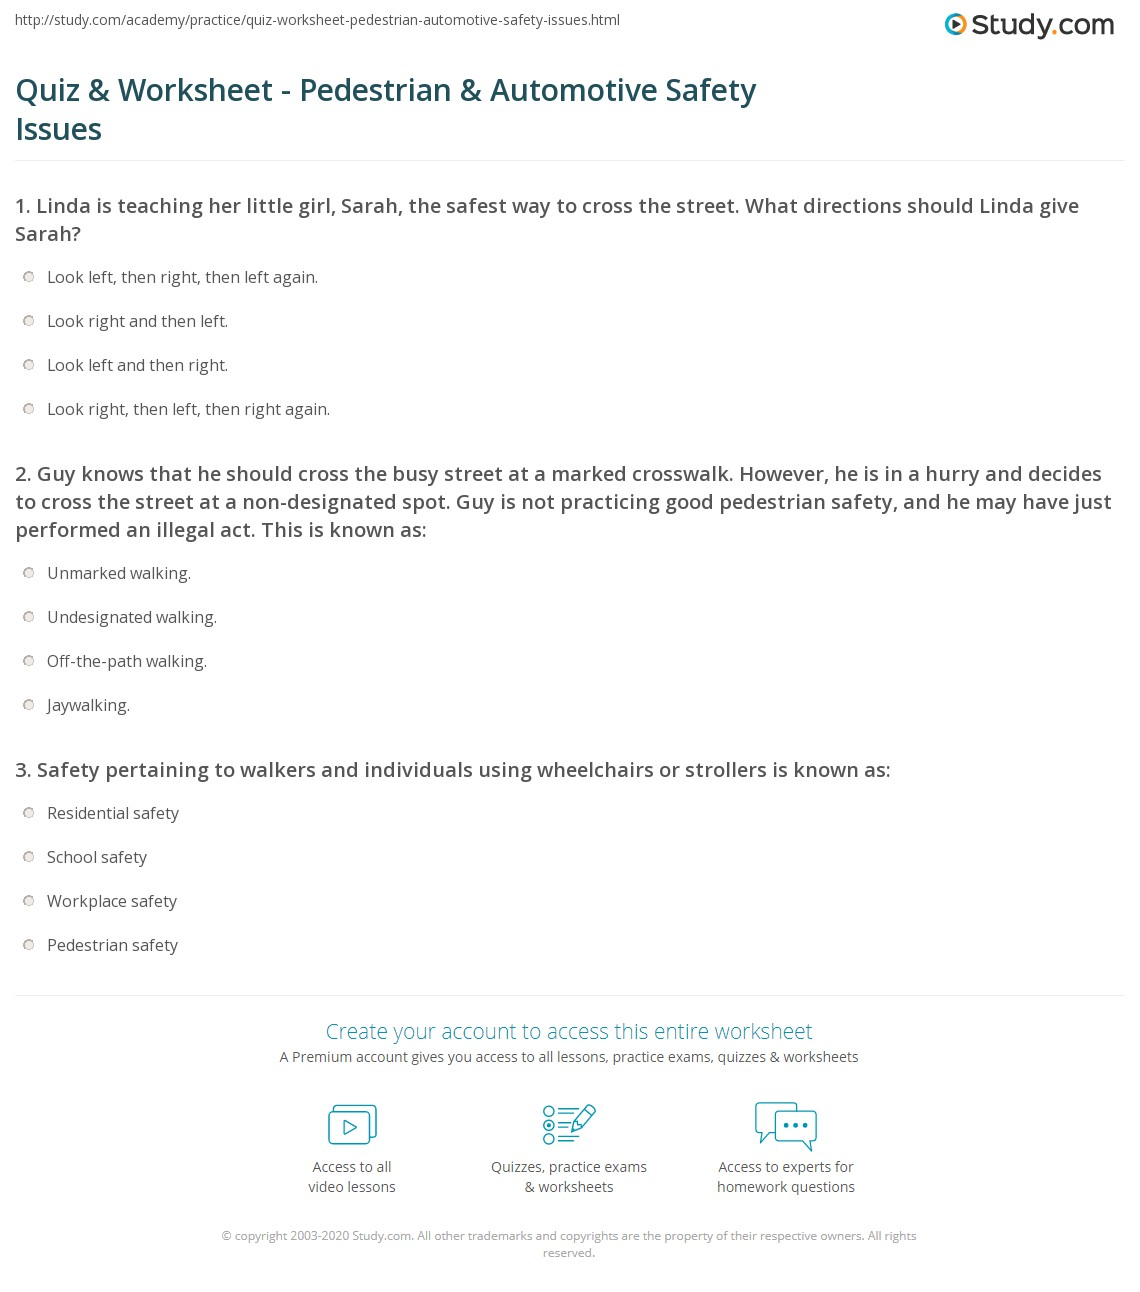 Printables Pedestrian Safety Worksheets quiz worksheet pedestrian automotive safety issues study com print definition and precautionary measures worksheet